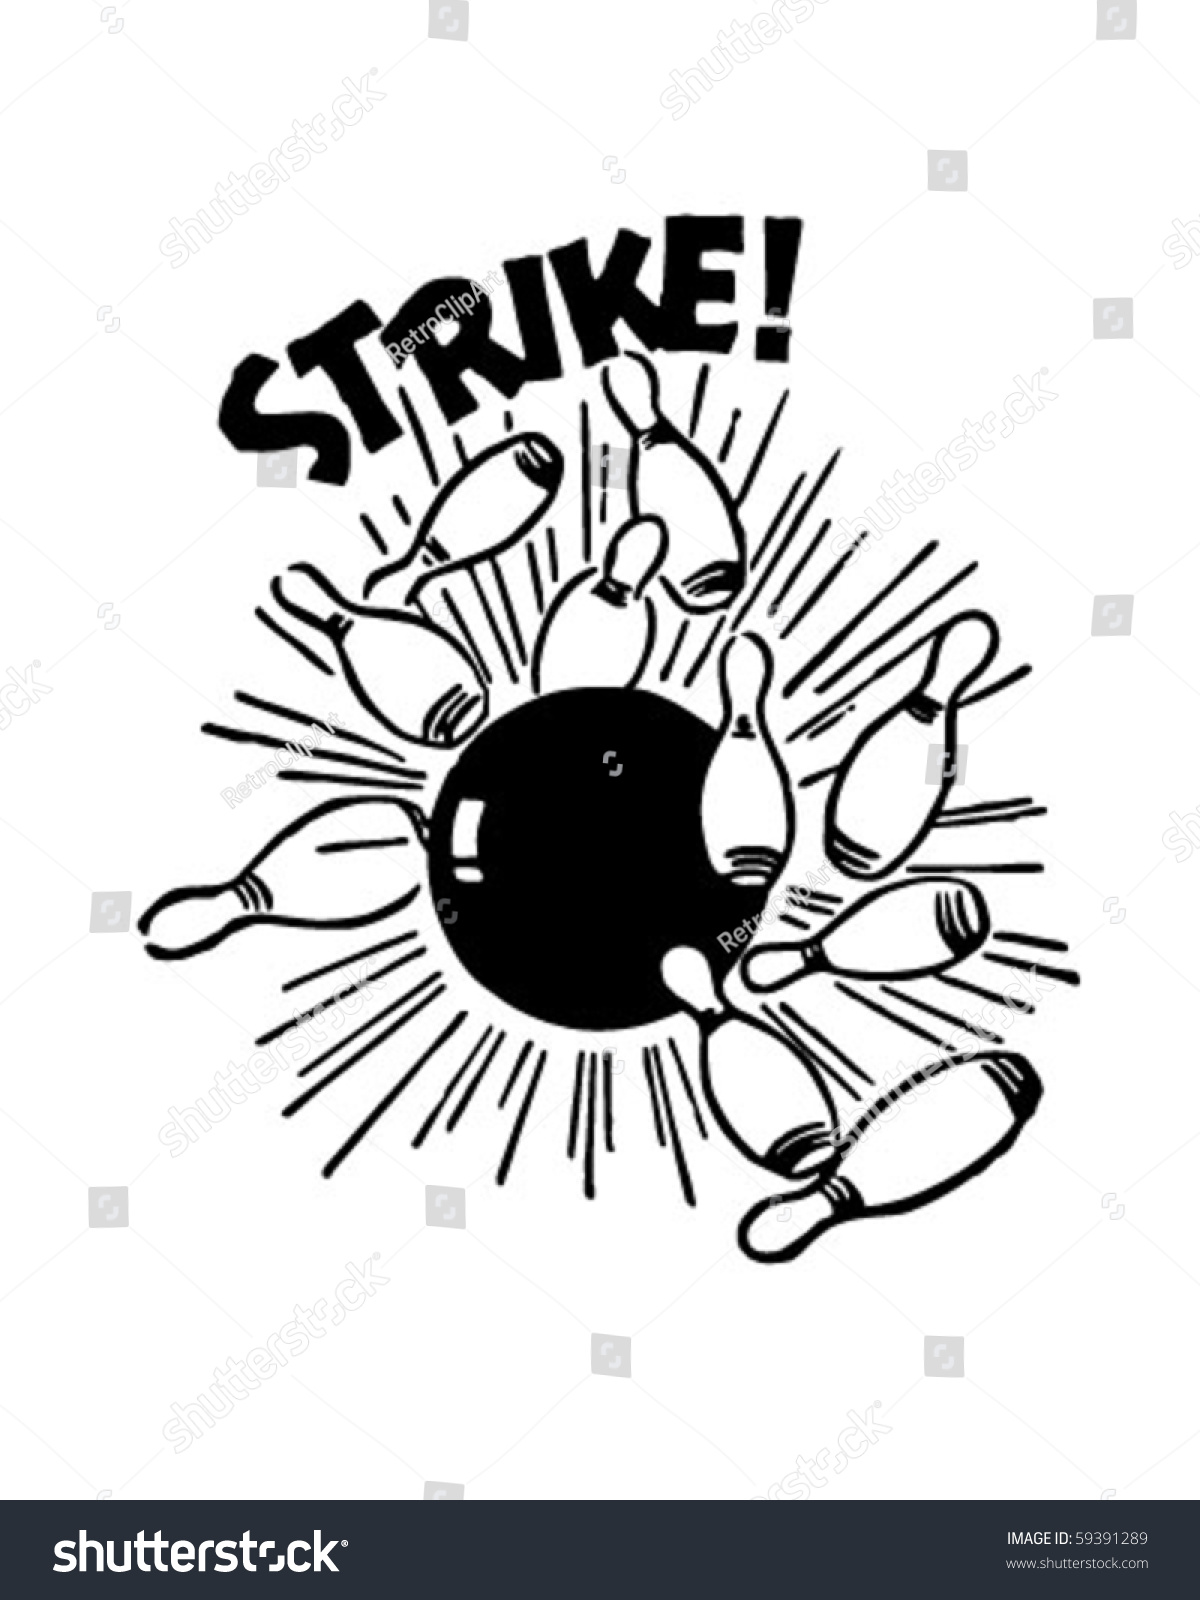 Royalty Free Bowling Strike Clip Art, Vector Images ...  |Bowling Pin Strike Clipart